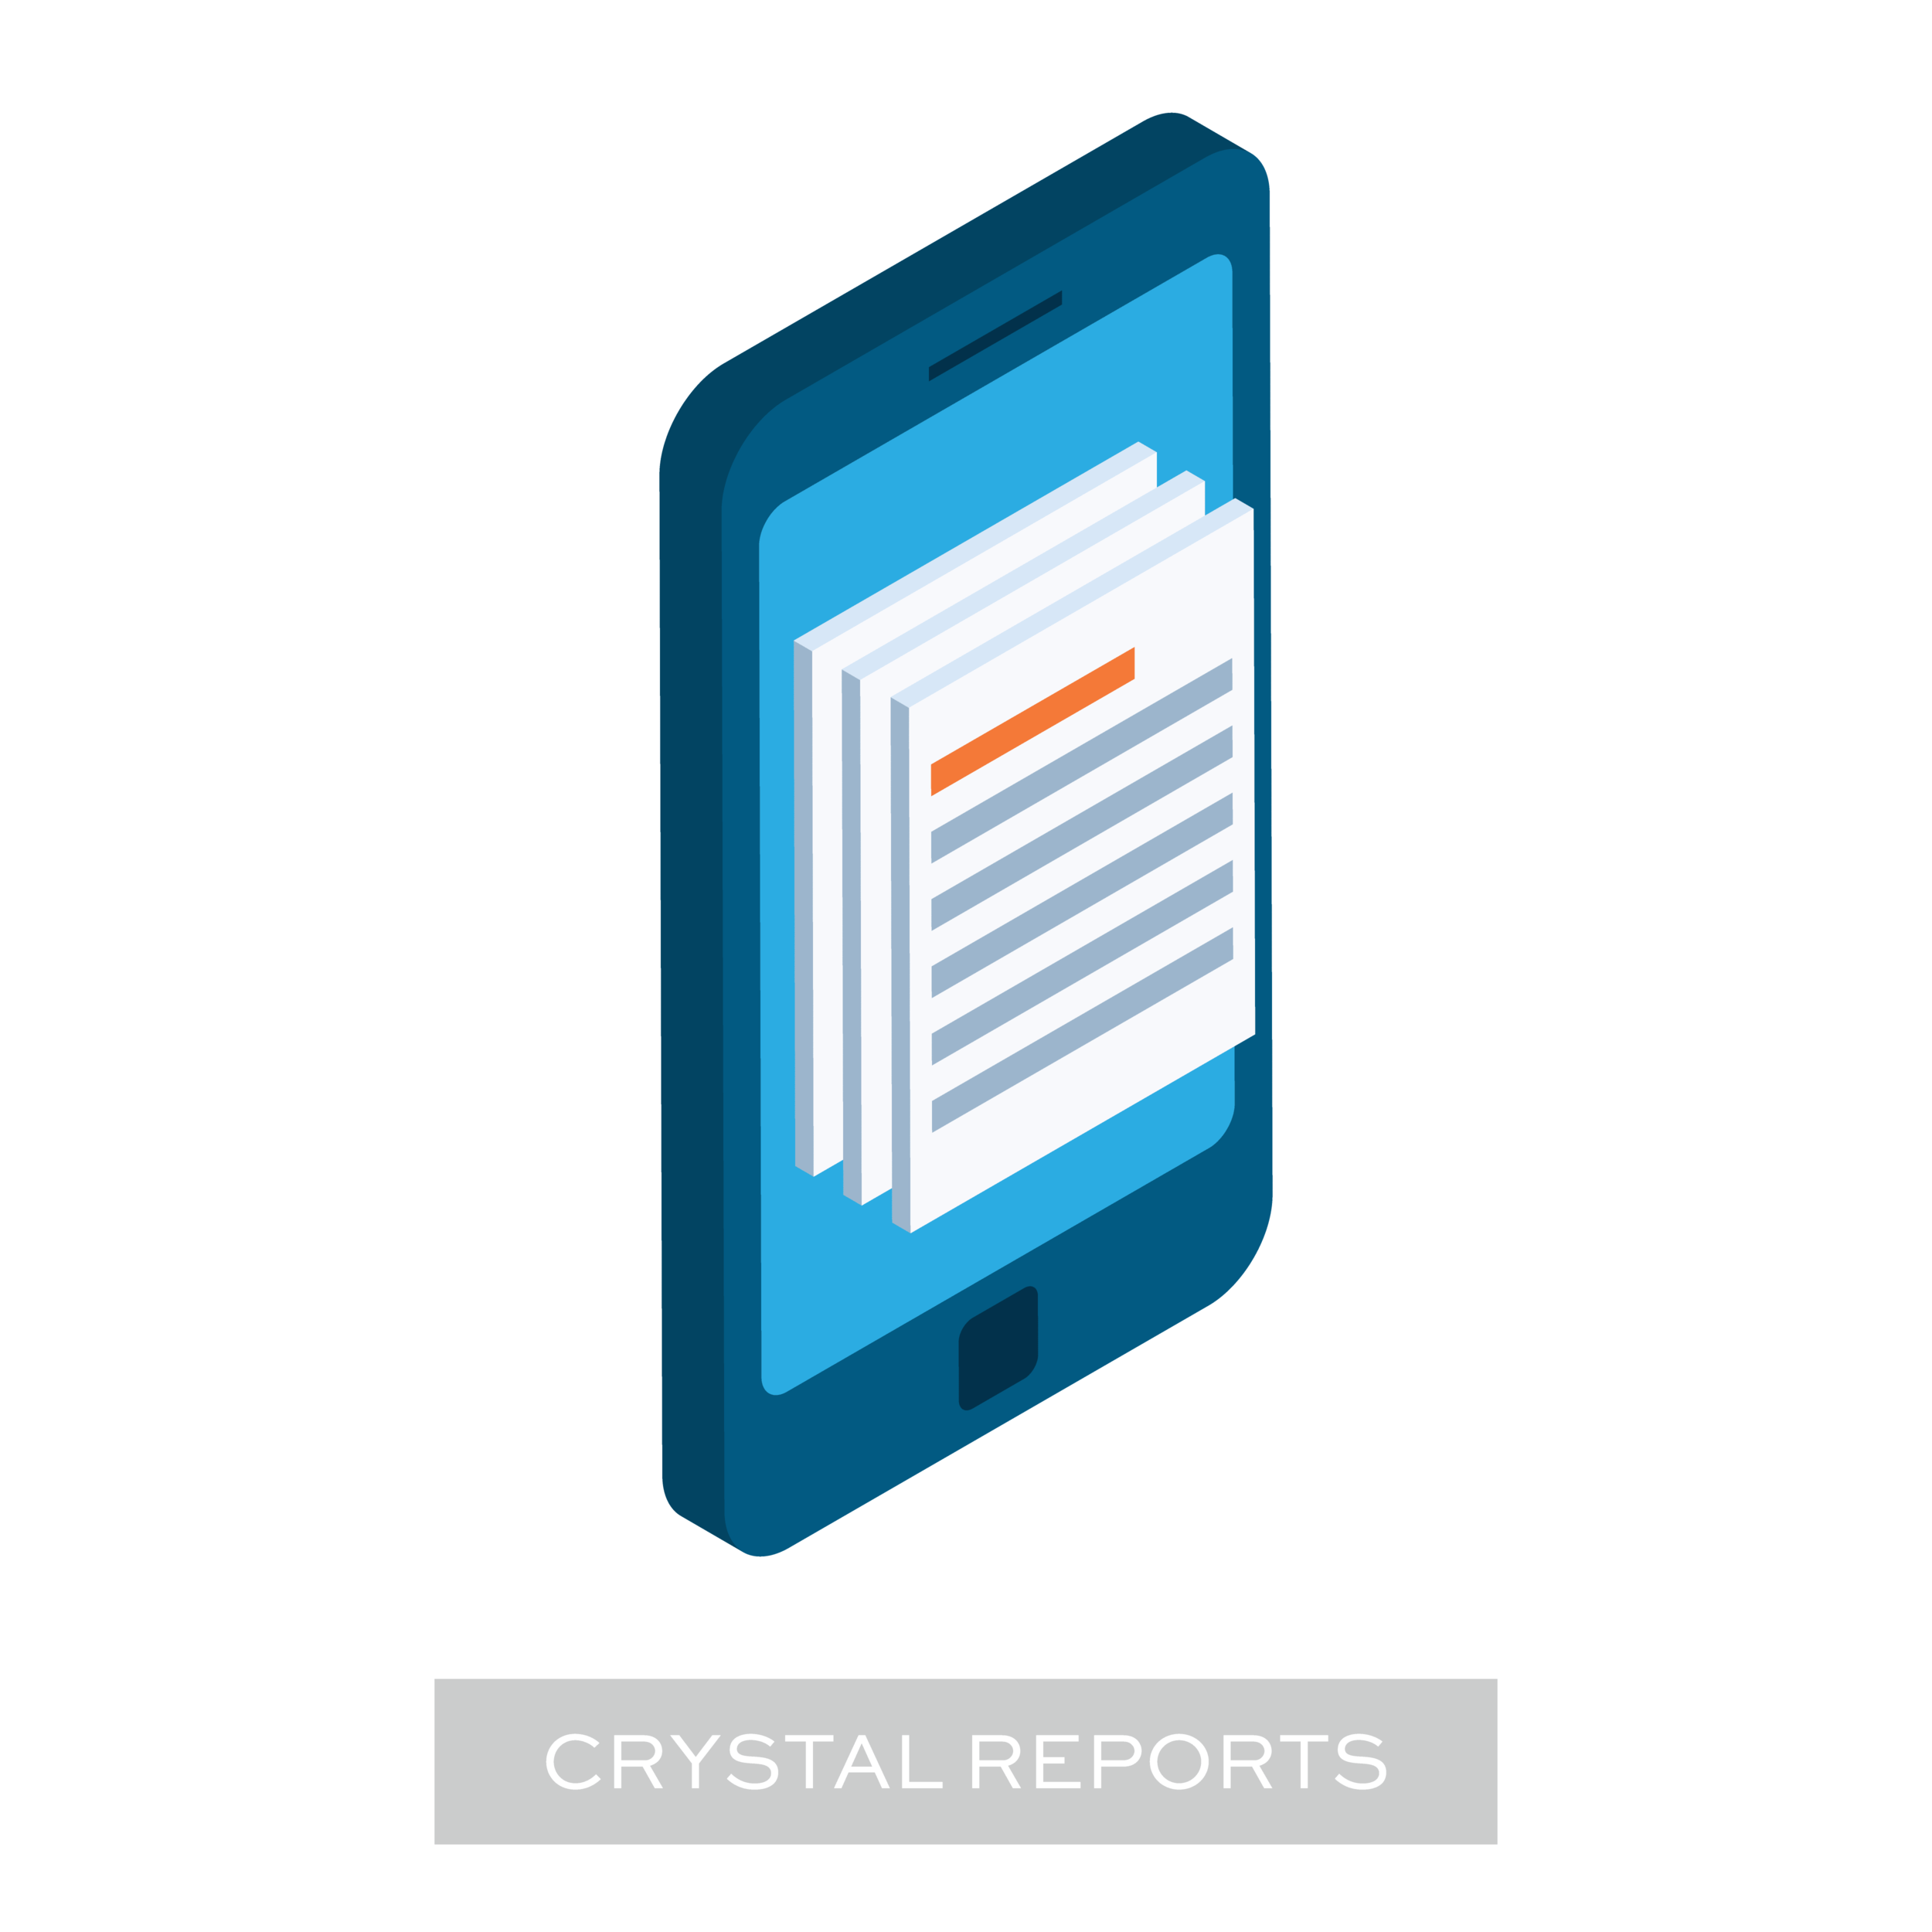 A 3D illustration of a mobile phone with Crystal Reports on it, which is representing the area that provides step-by-step instructions for setting up Bezlio for Crystal Reports.